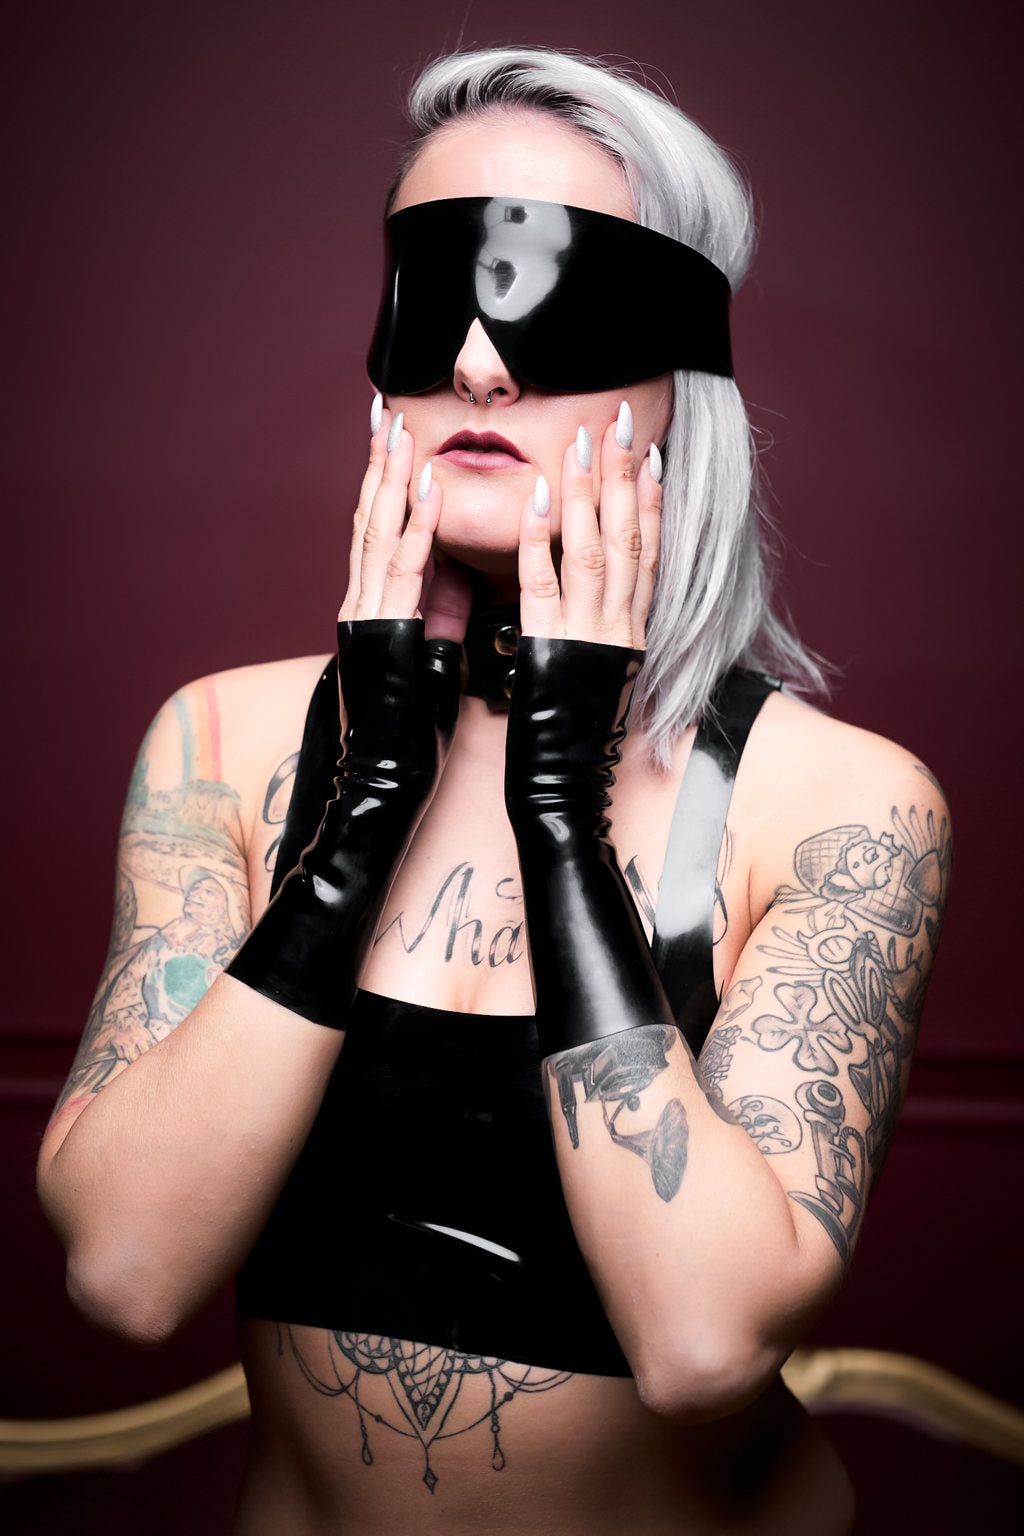 A woman wearing a latex blindfold and fingerless latex wrist gloves.